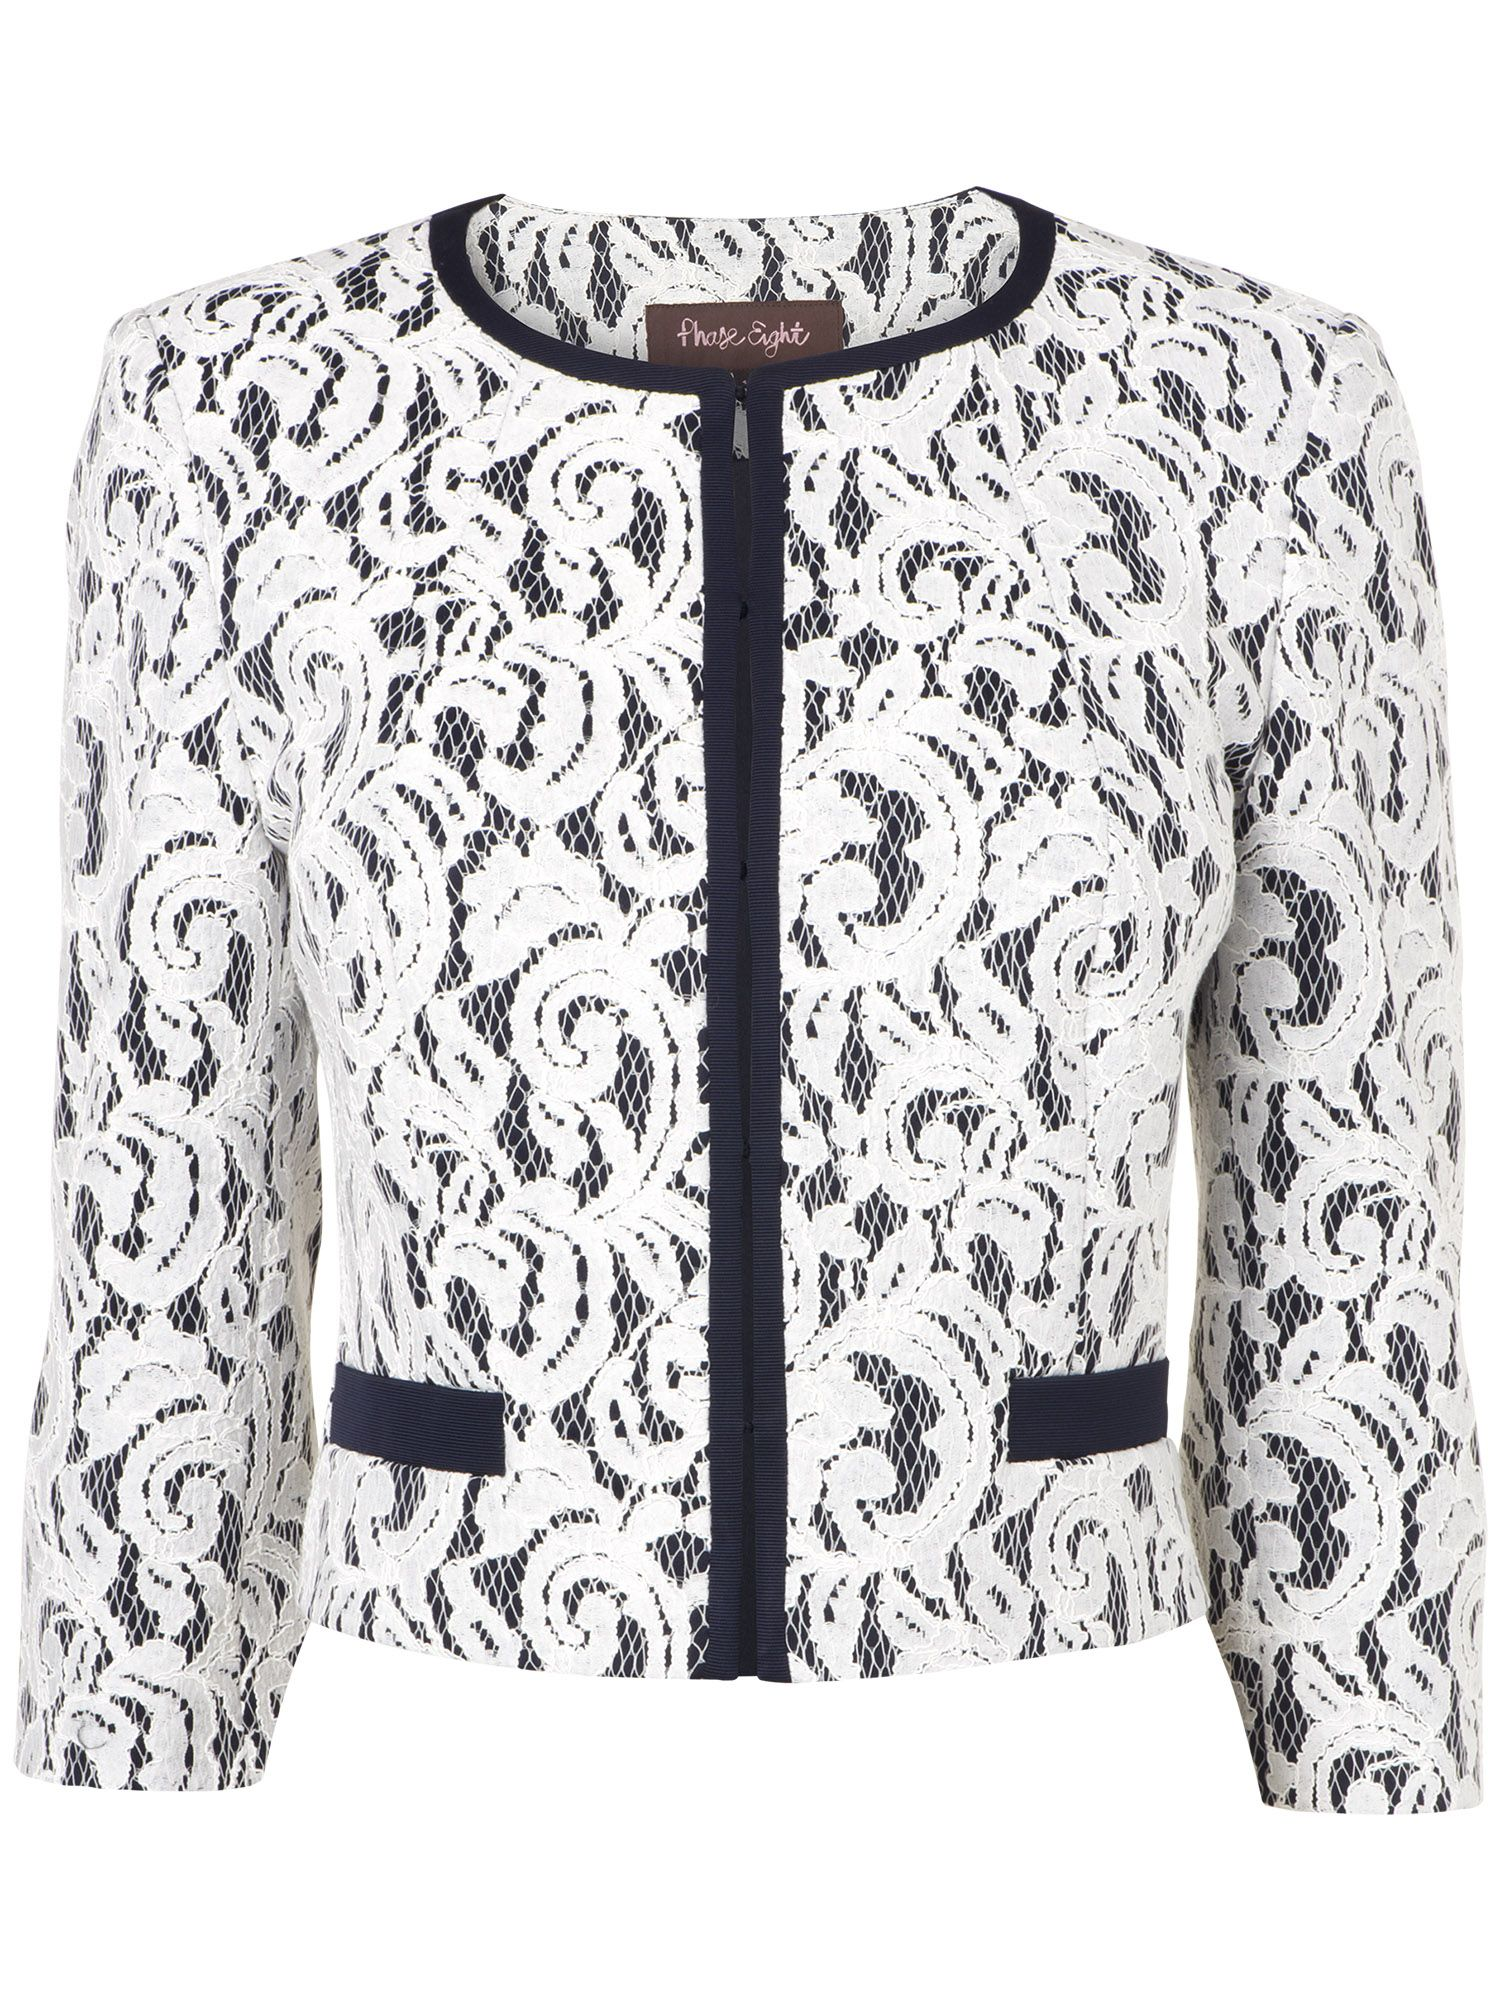 Matilde lace jacket